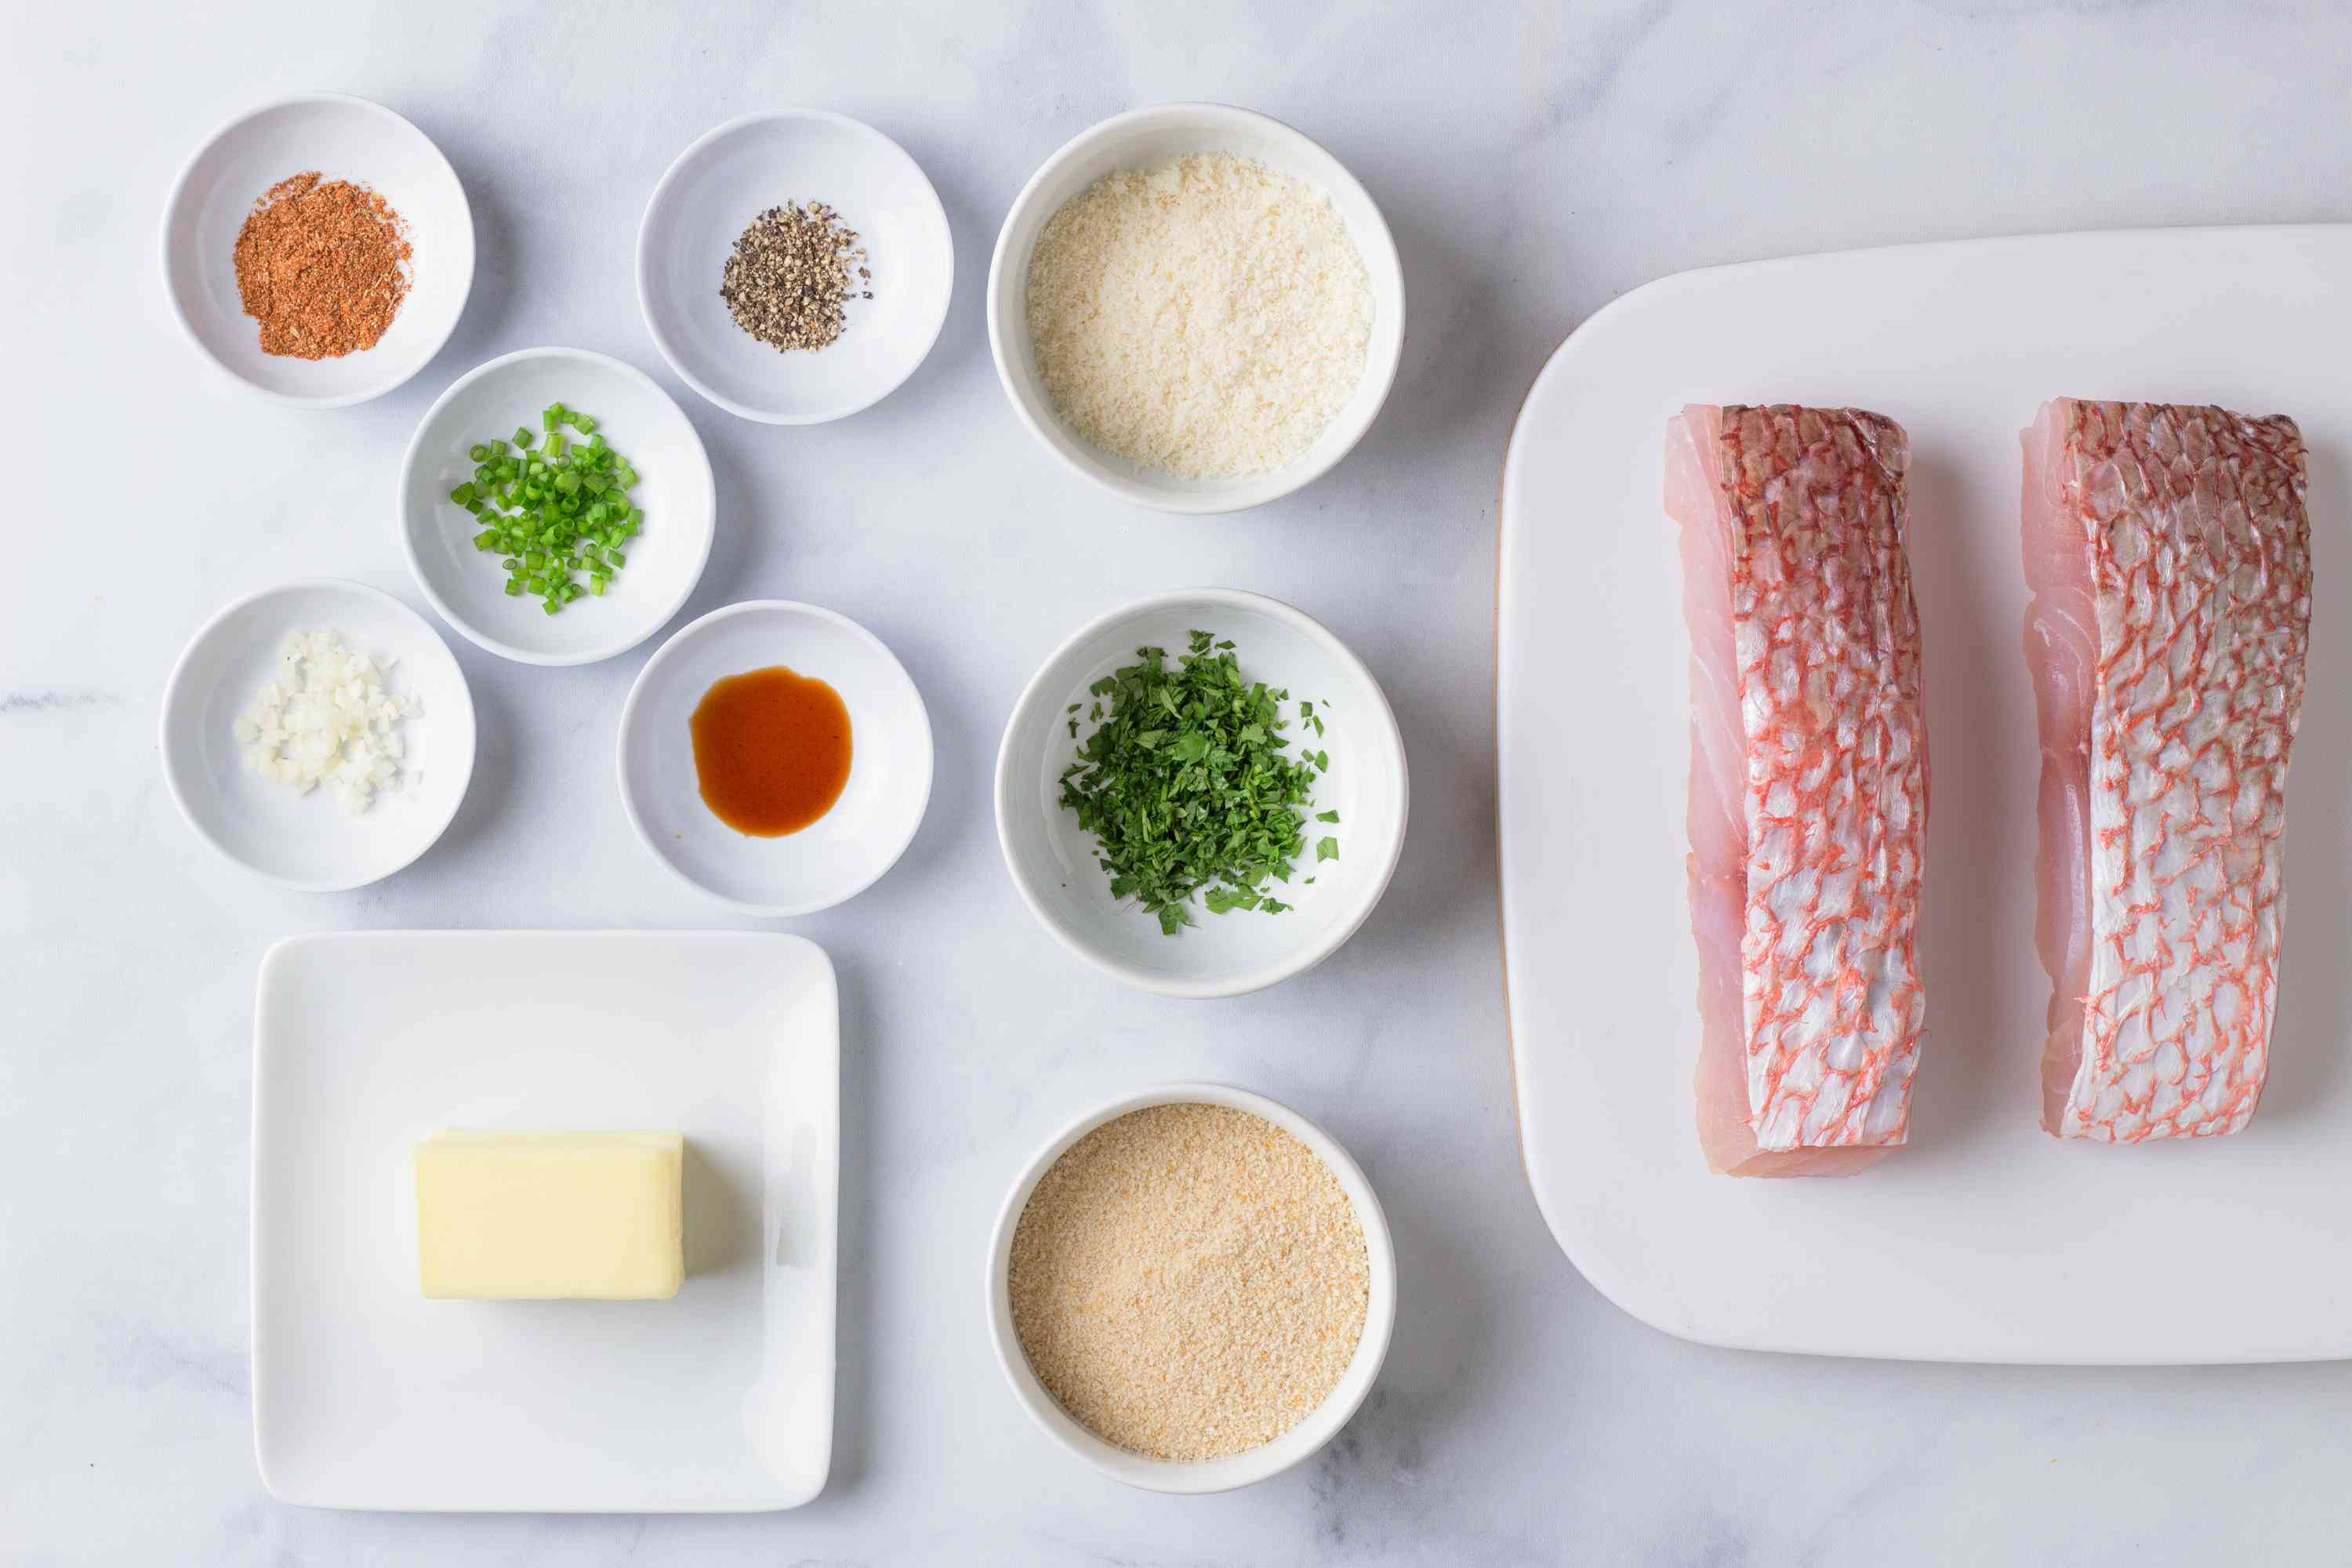 Baked red snapper recipe ingredients